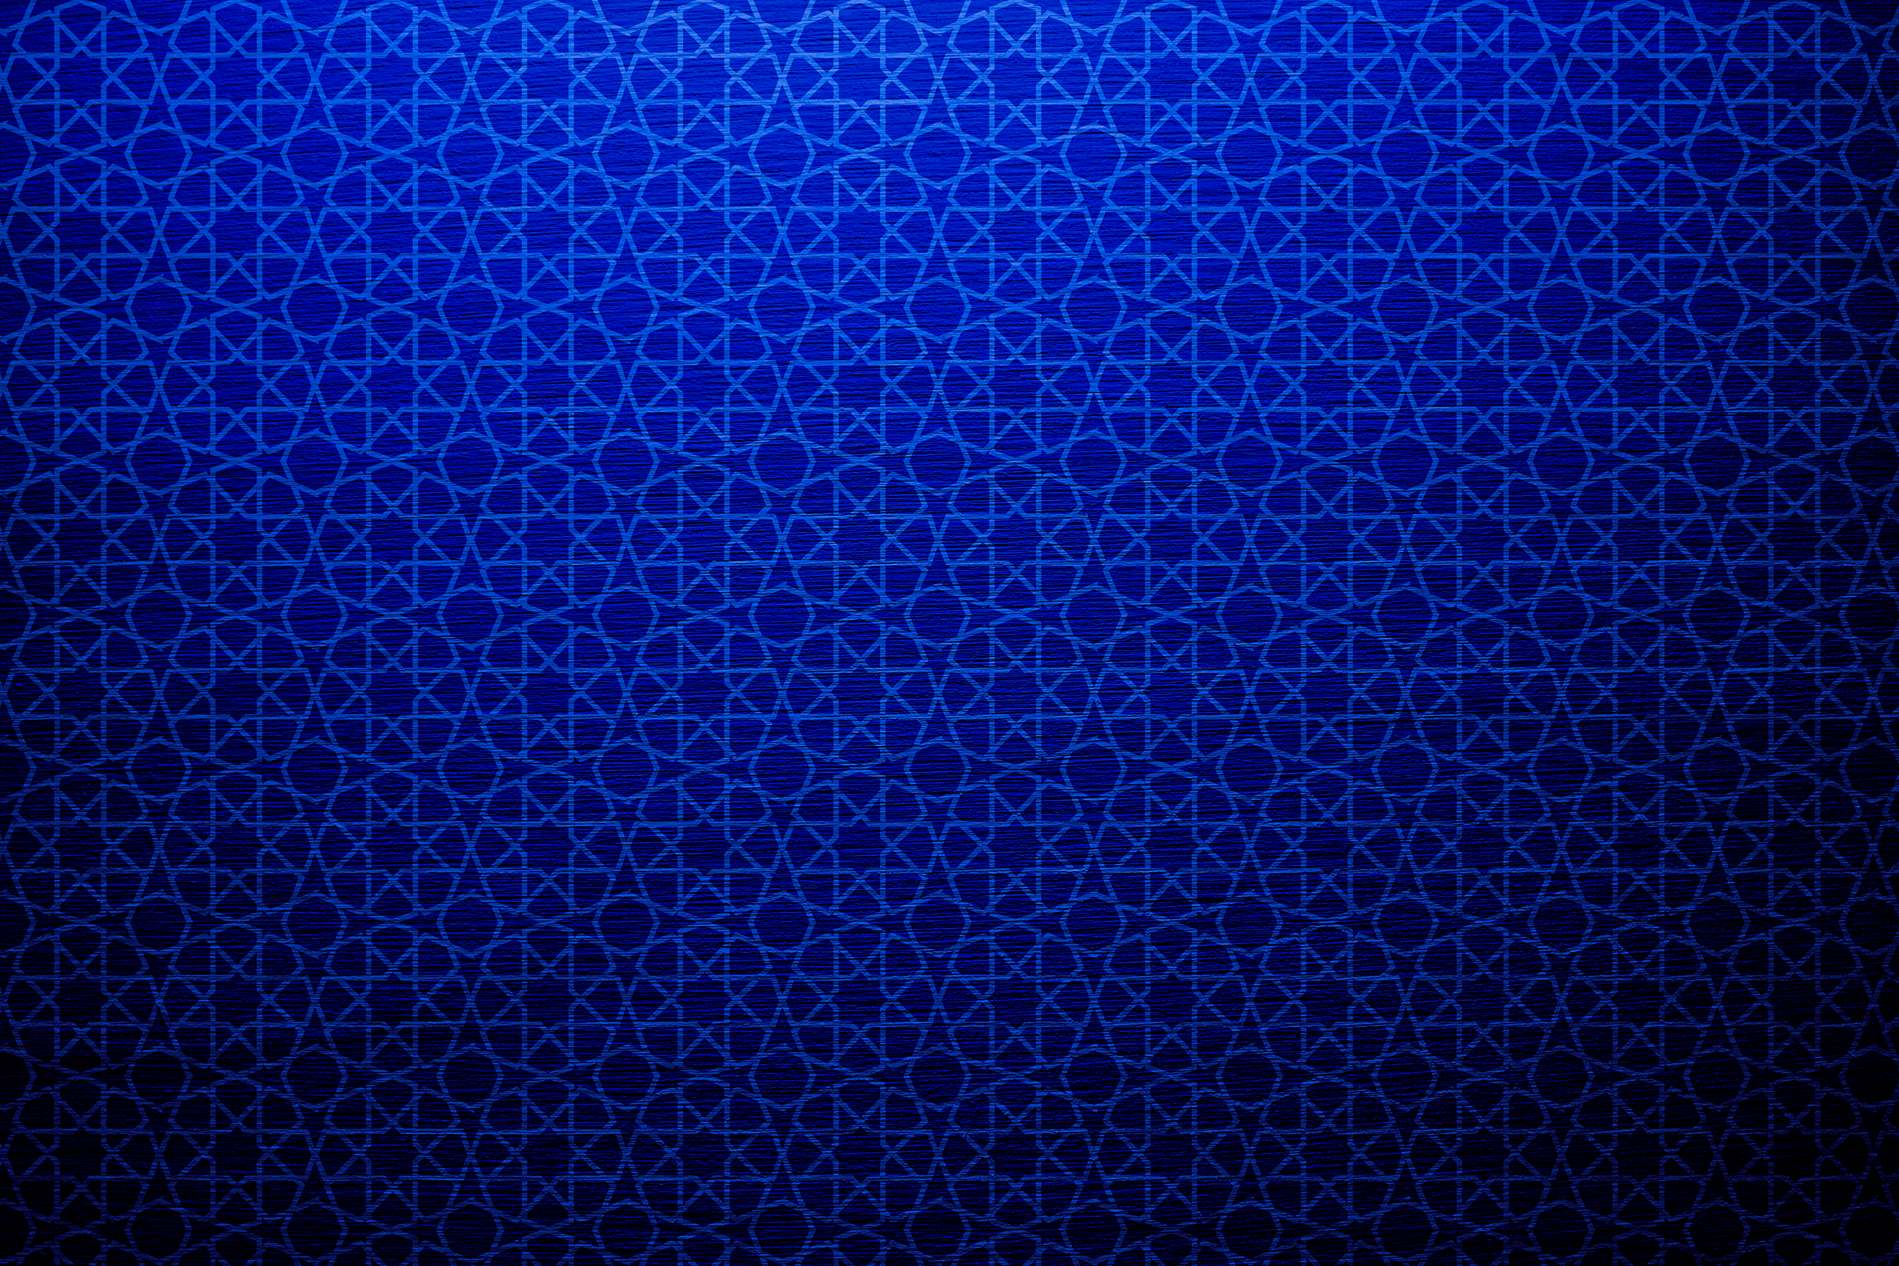 Blue Wall Texture With Geometric Shapes Pattern Background